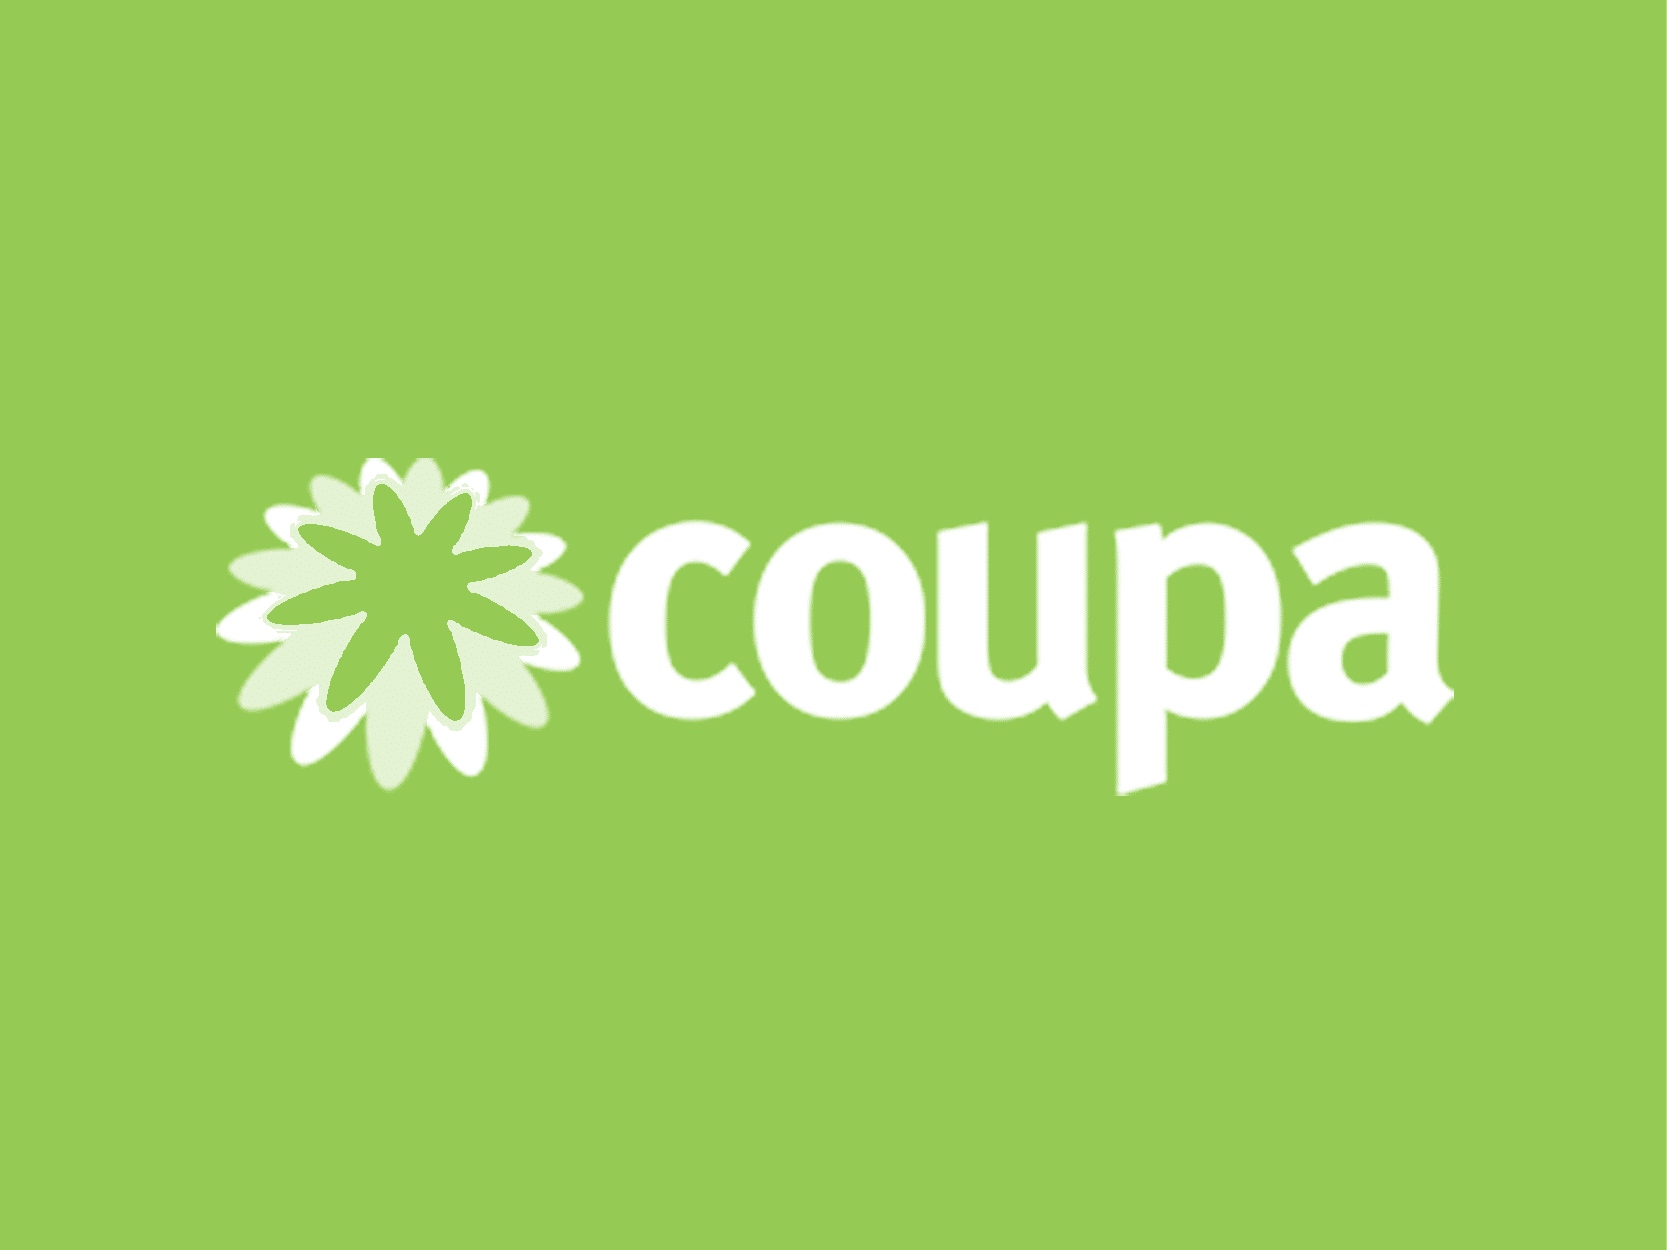 Coupa Hover